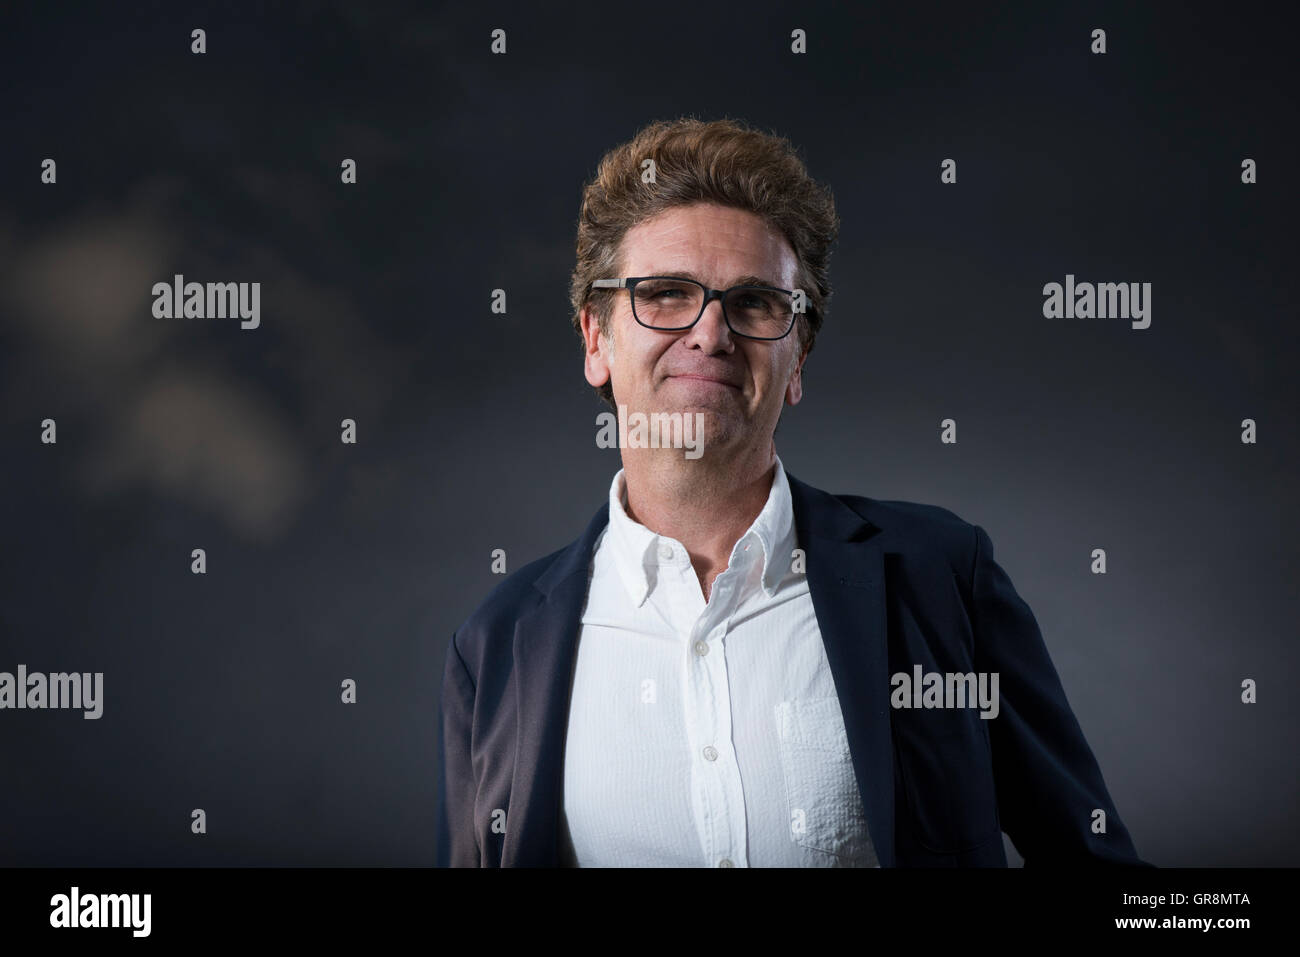 American short story writer and novelist David Means. - Stock Image